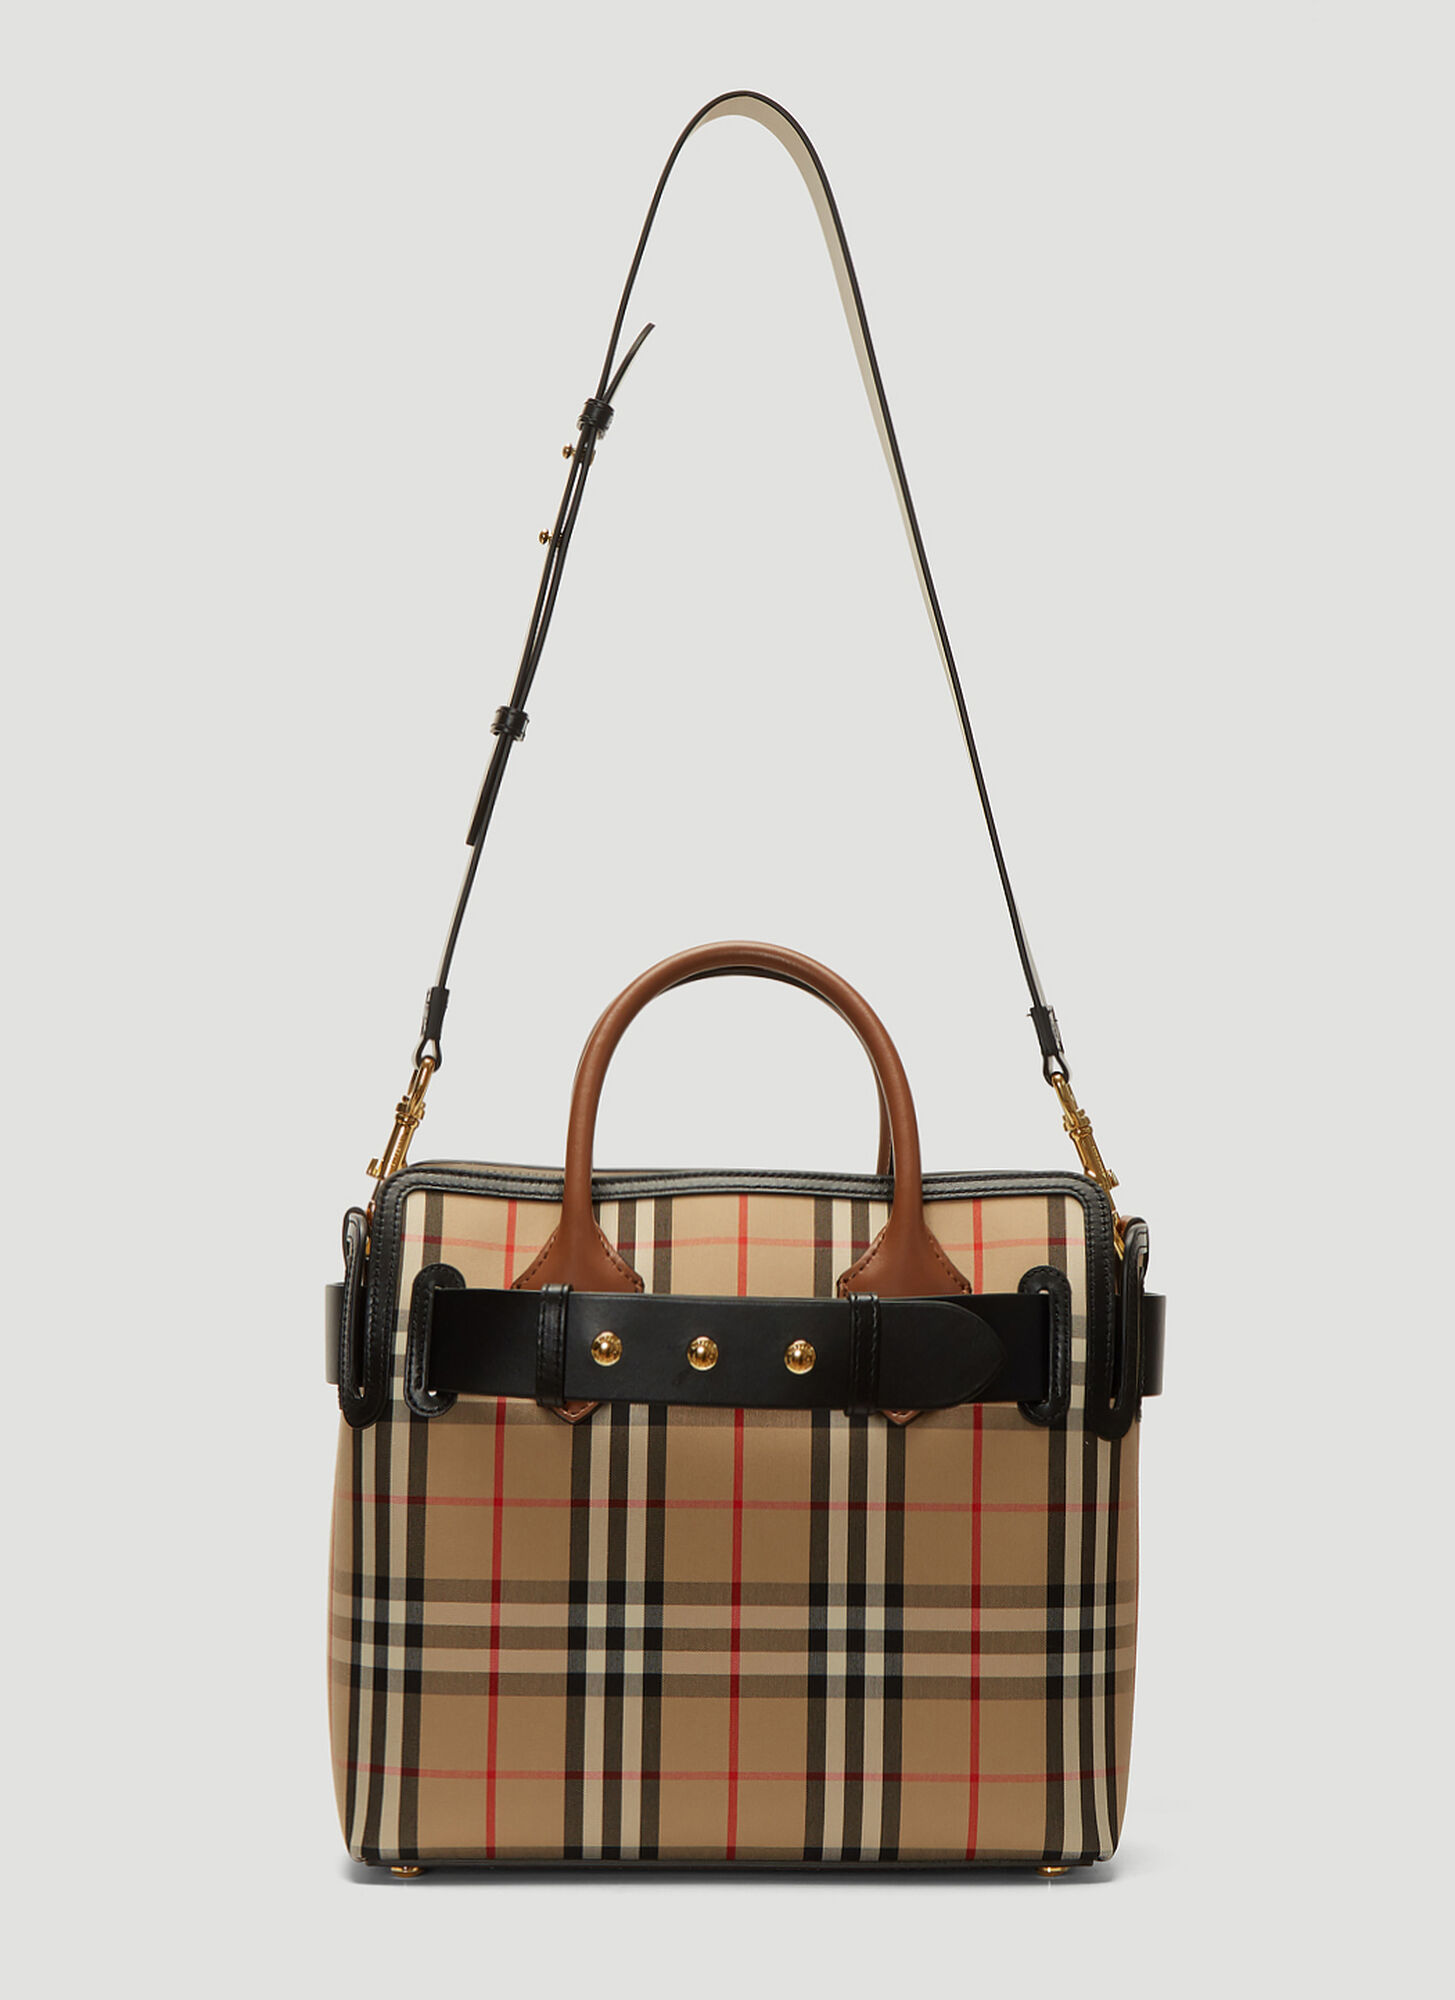 Burberry Vintage Check Tote Bag in Beige